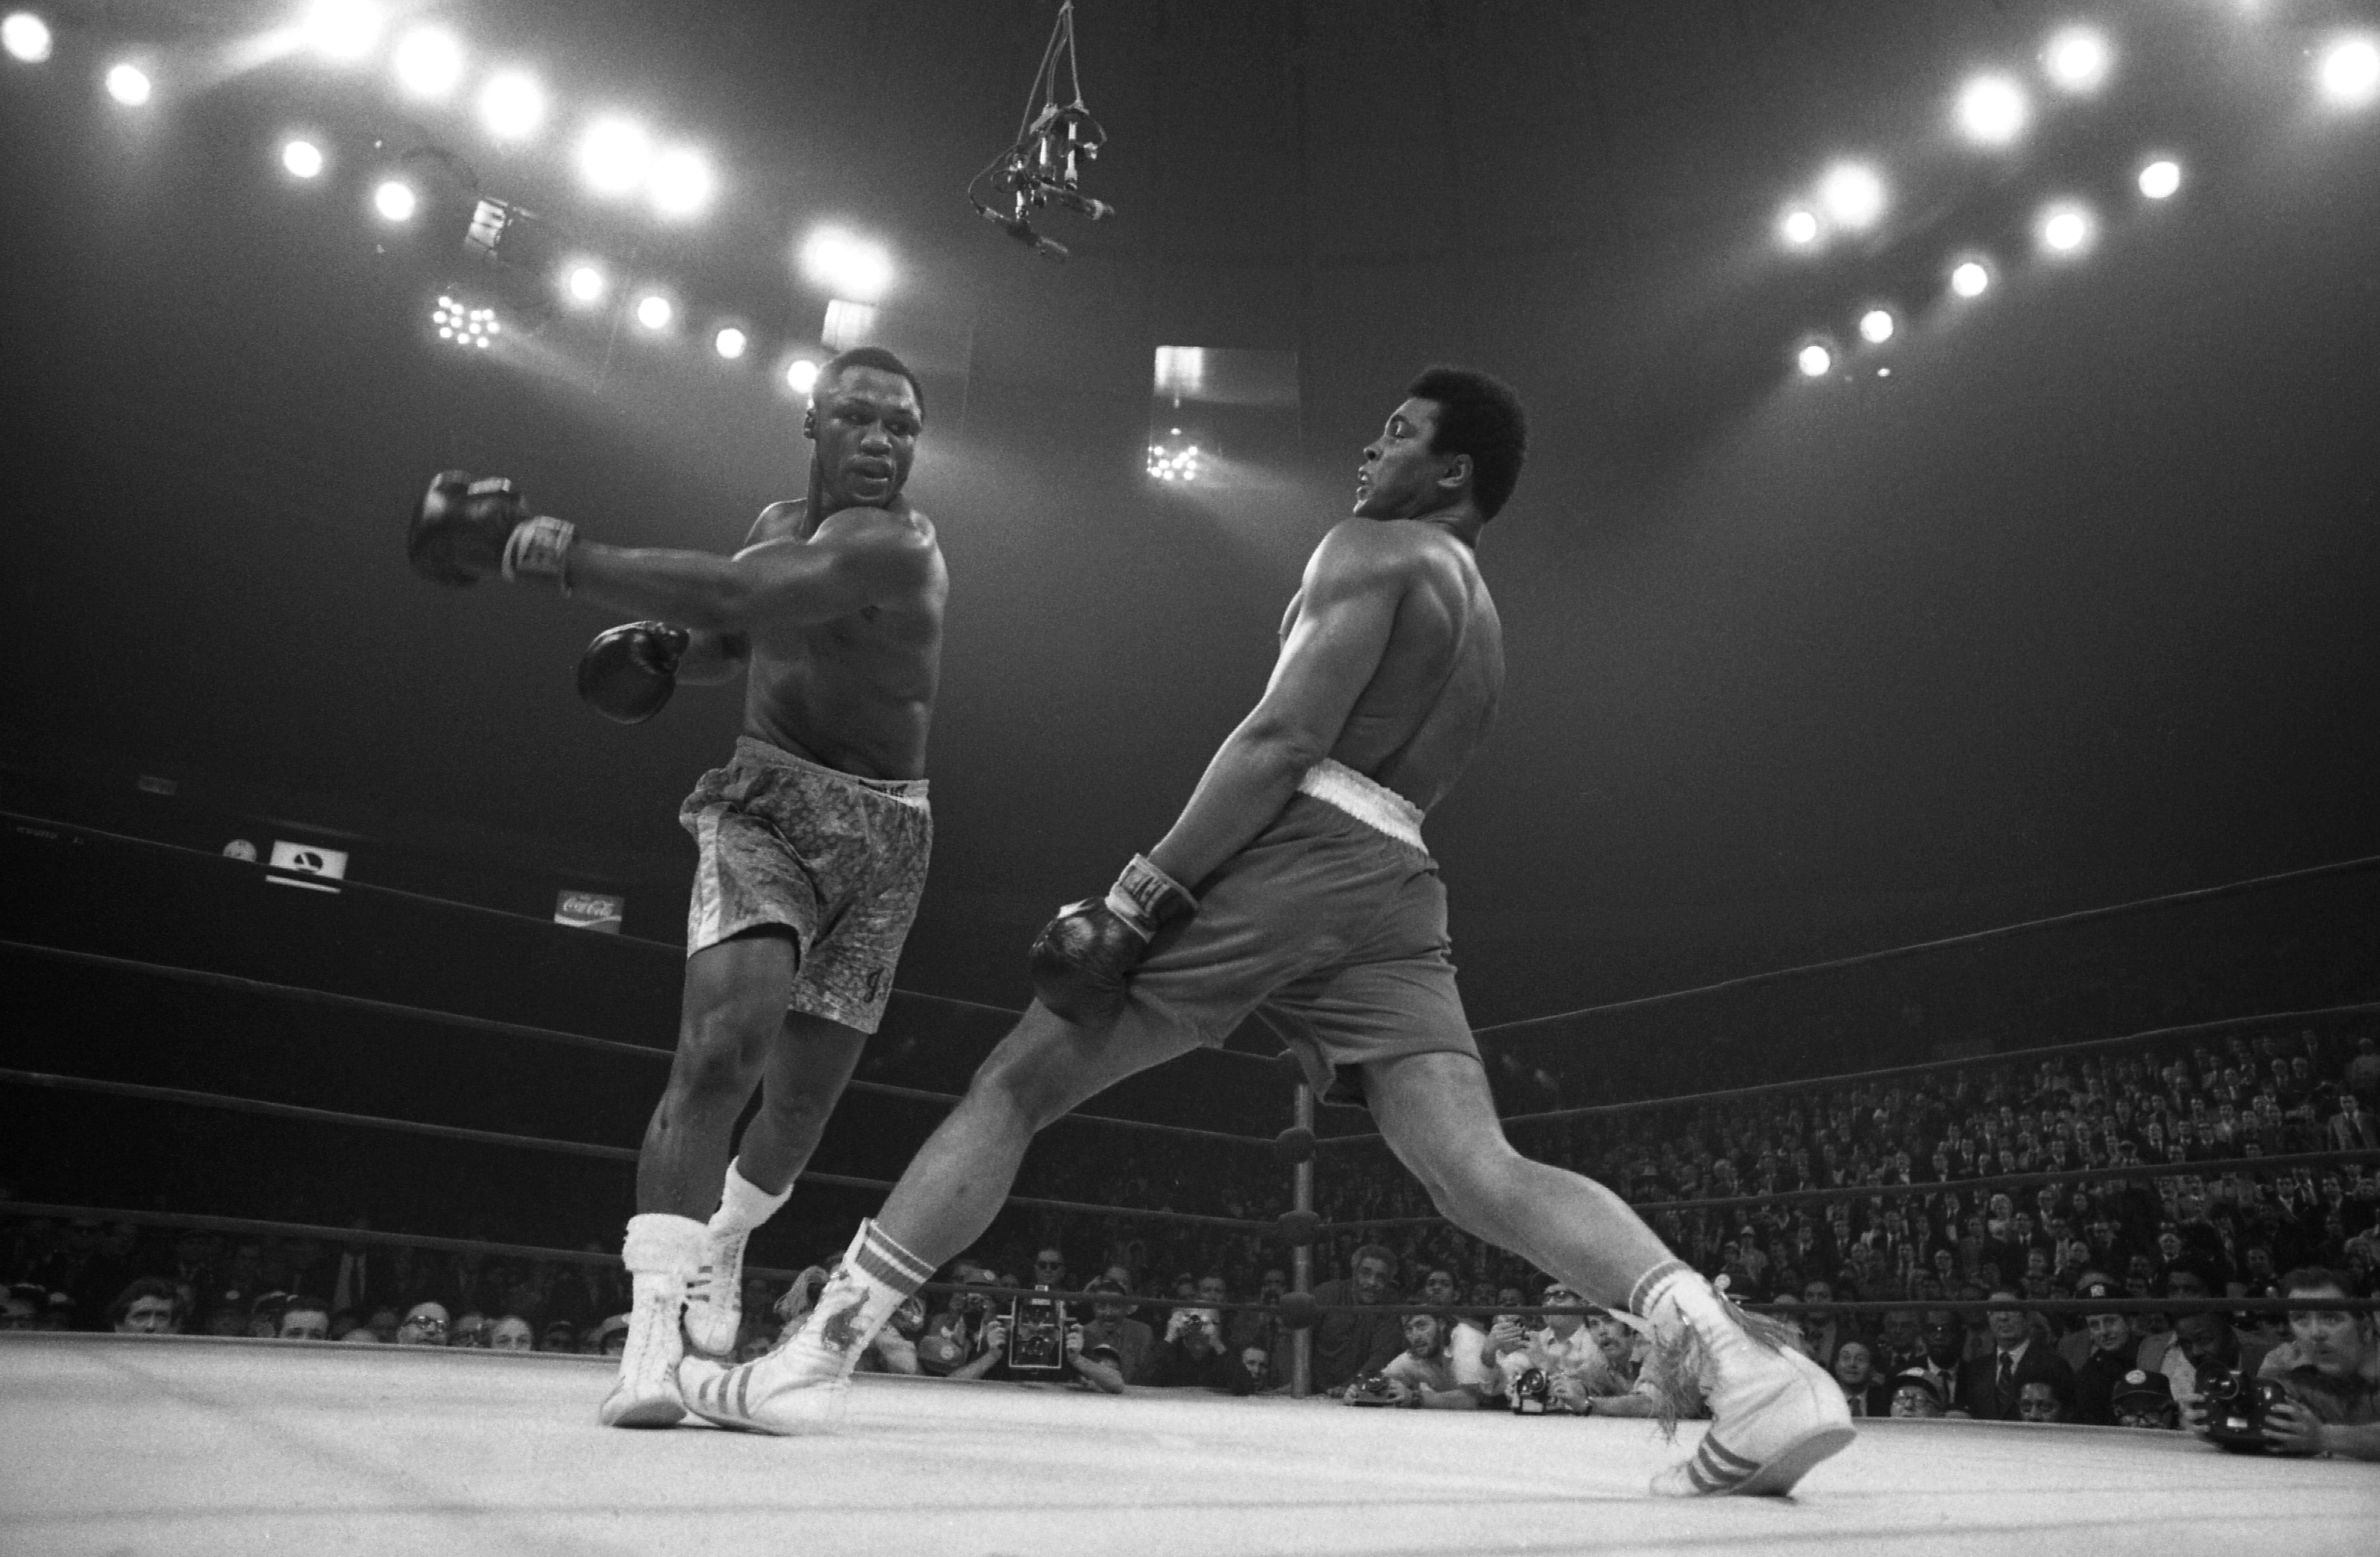 Joe Frazier tries to punch Muhammad Ali